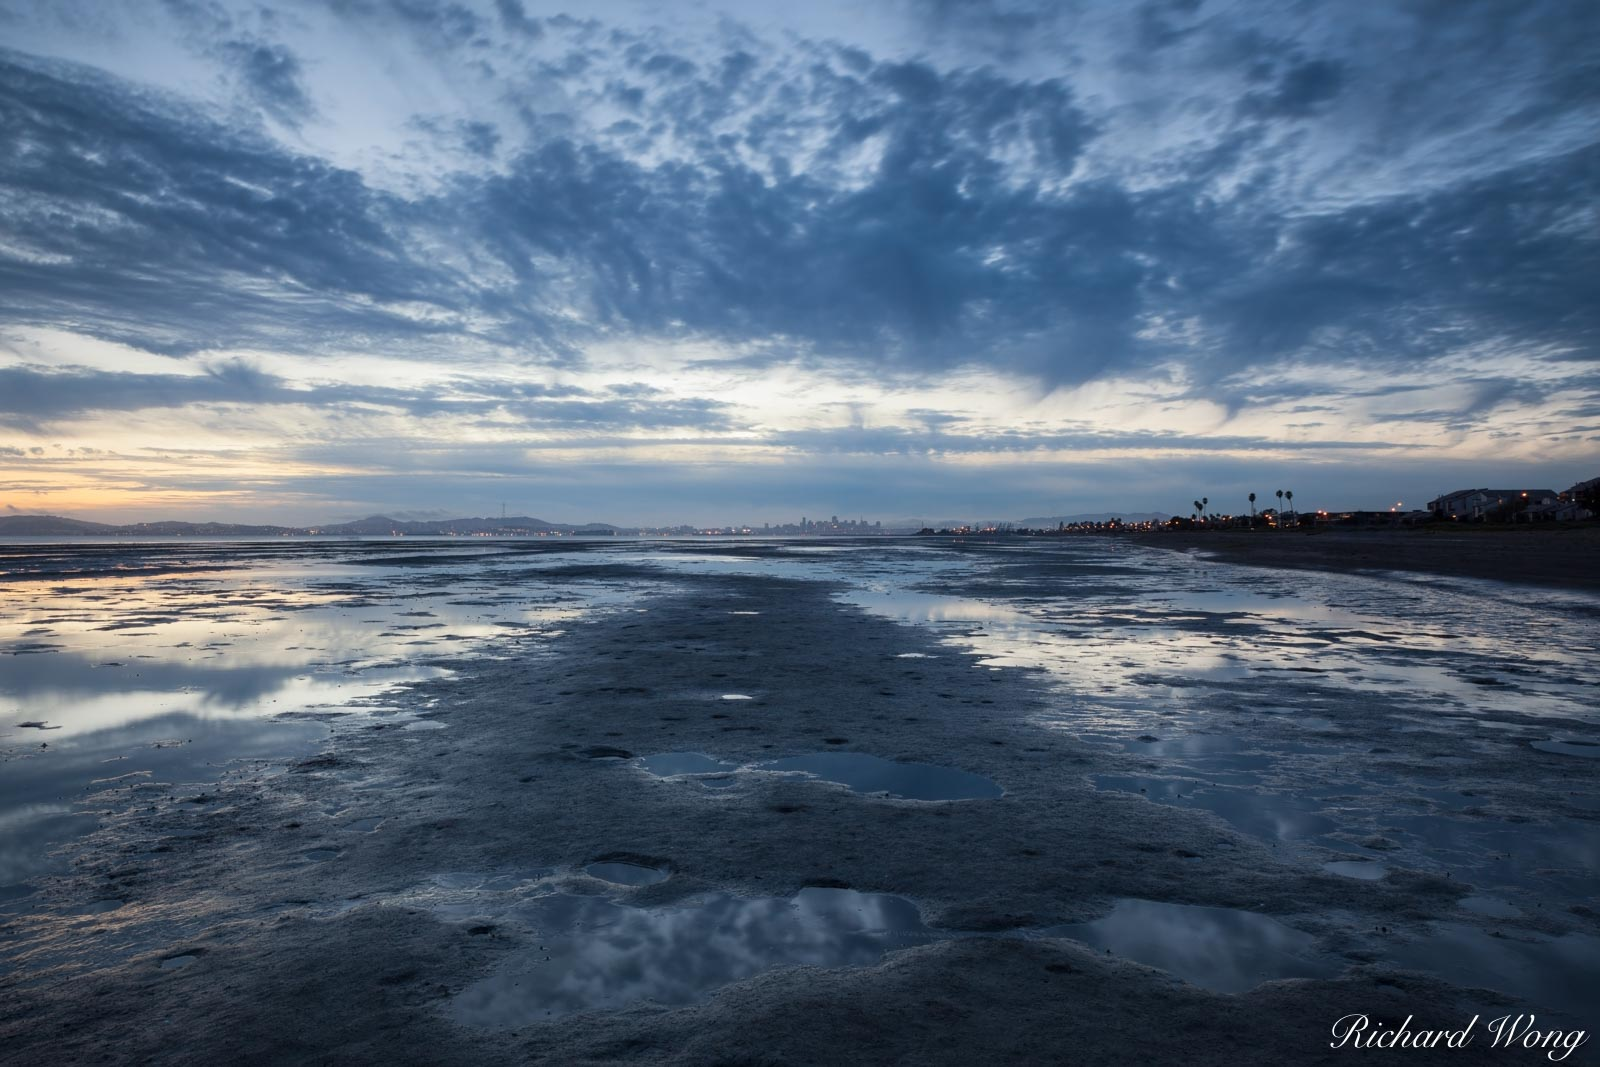 alameda, city, clouds, downtown san francisco skyline, dusk, east bay, ecosystem, evening, landscape, low tide, marsh, nature, night, northern california, outdoors, outside, patterns, reflections, rob, photo